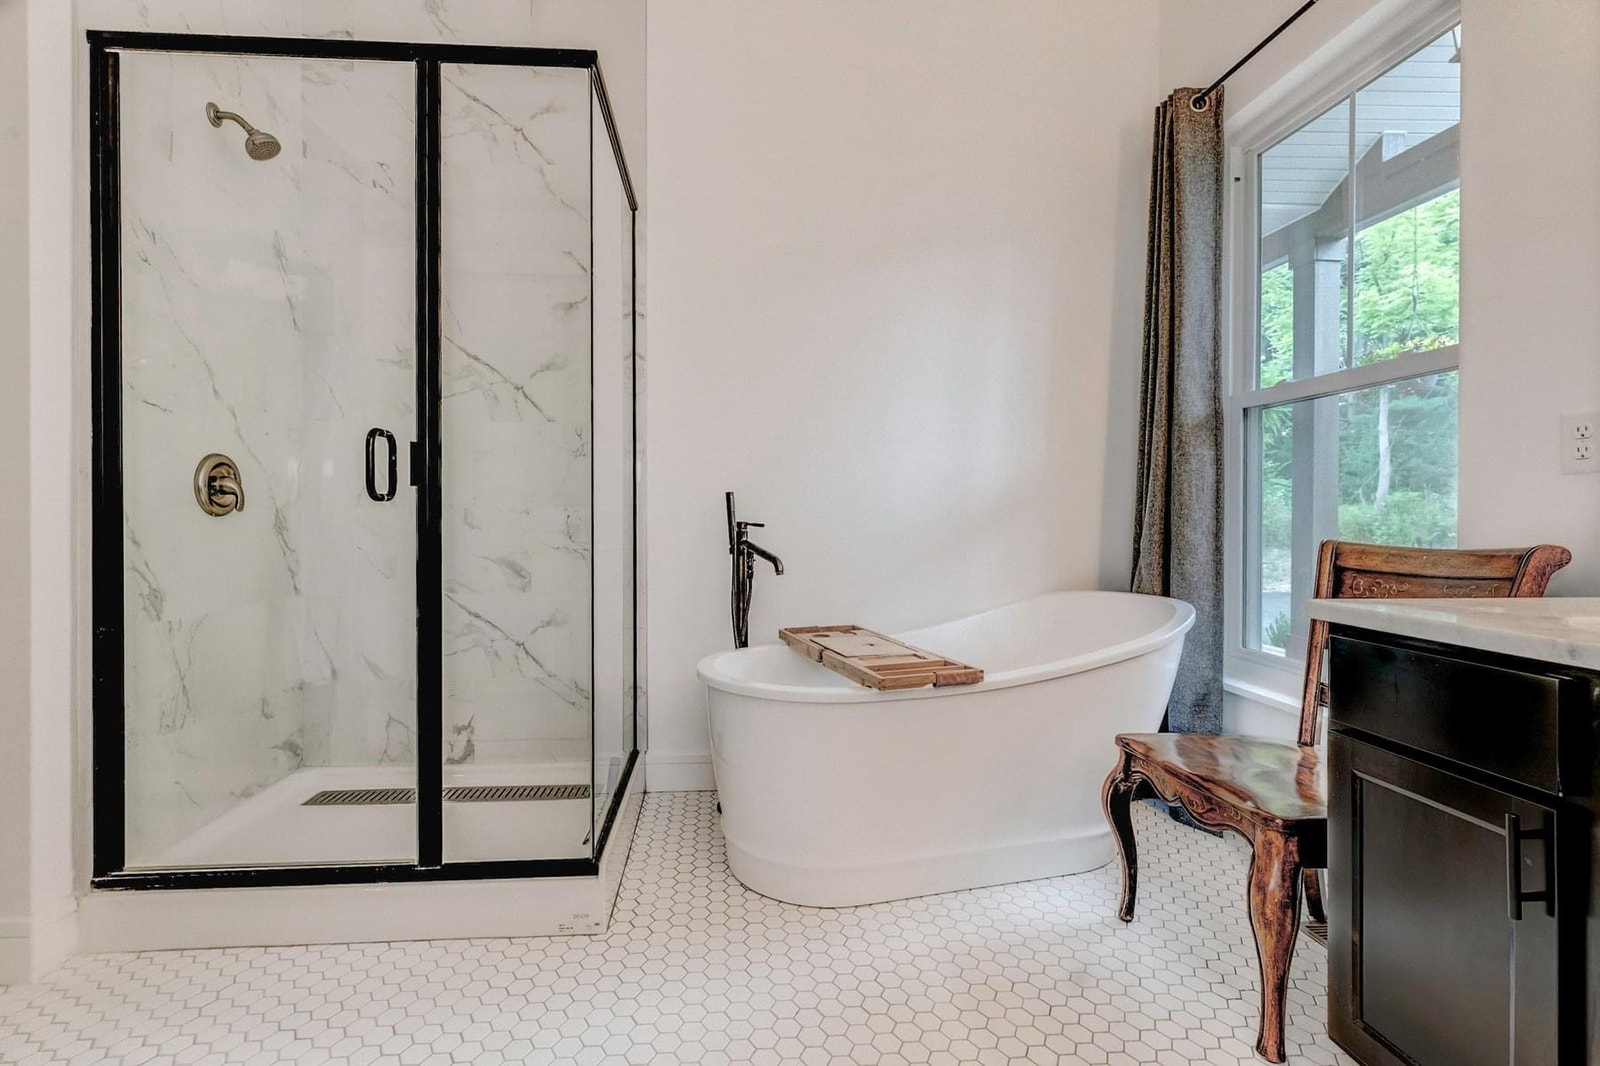 Stand alone bathtub and shower in master bath-10 must have items when building or renovating a home.